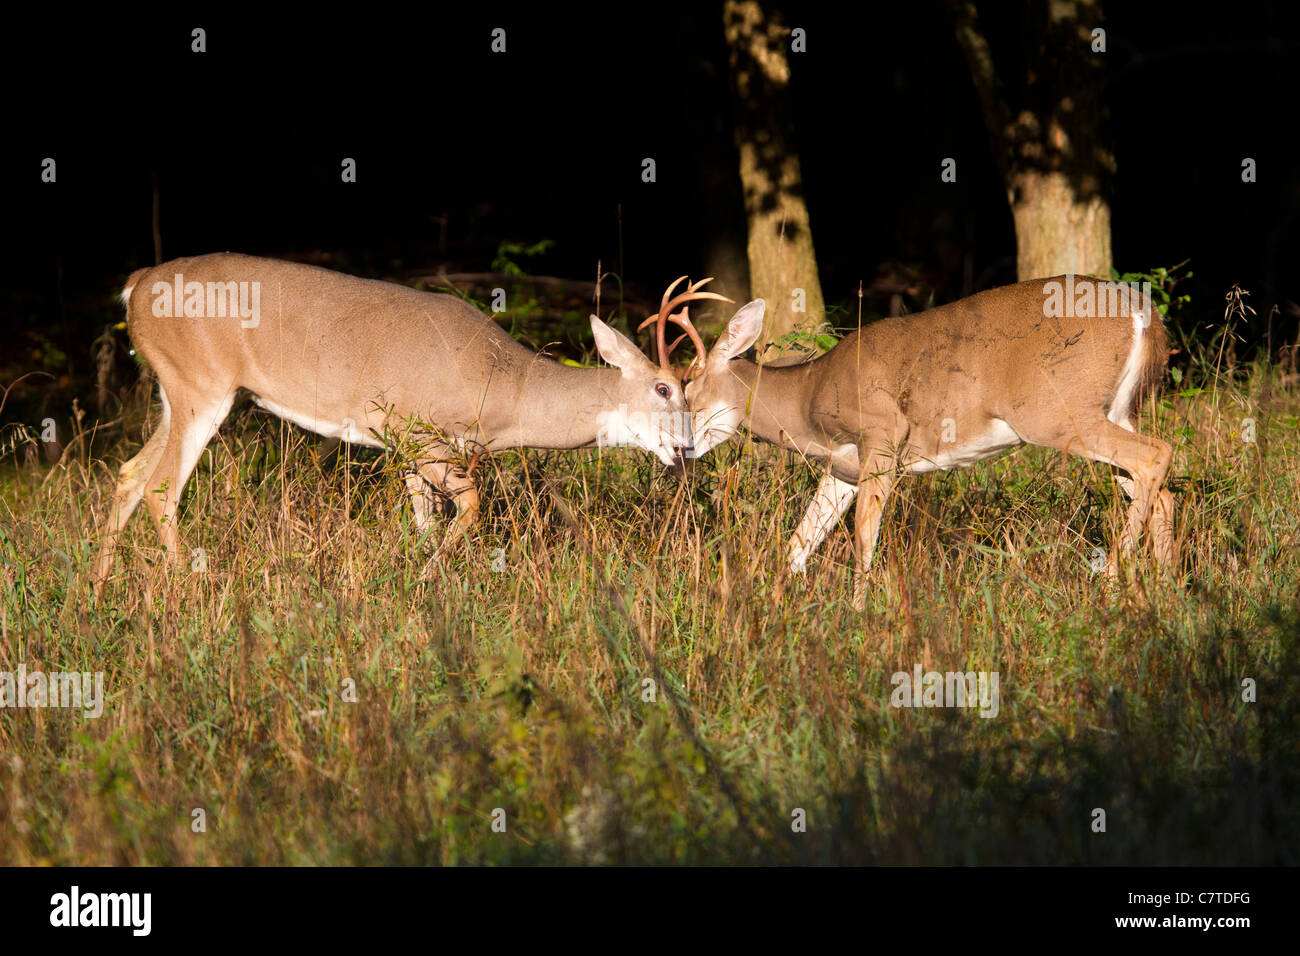 Two whitetail deer bucks butting heads during a fight for dominance. - Stock Image